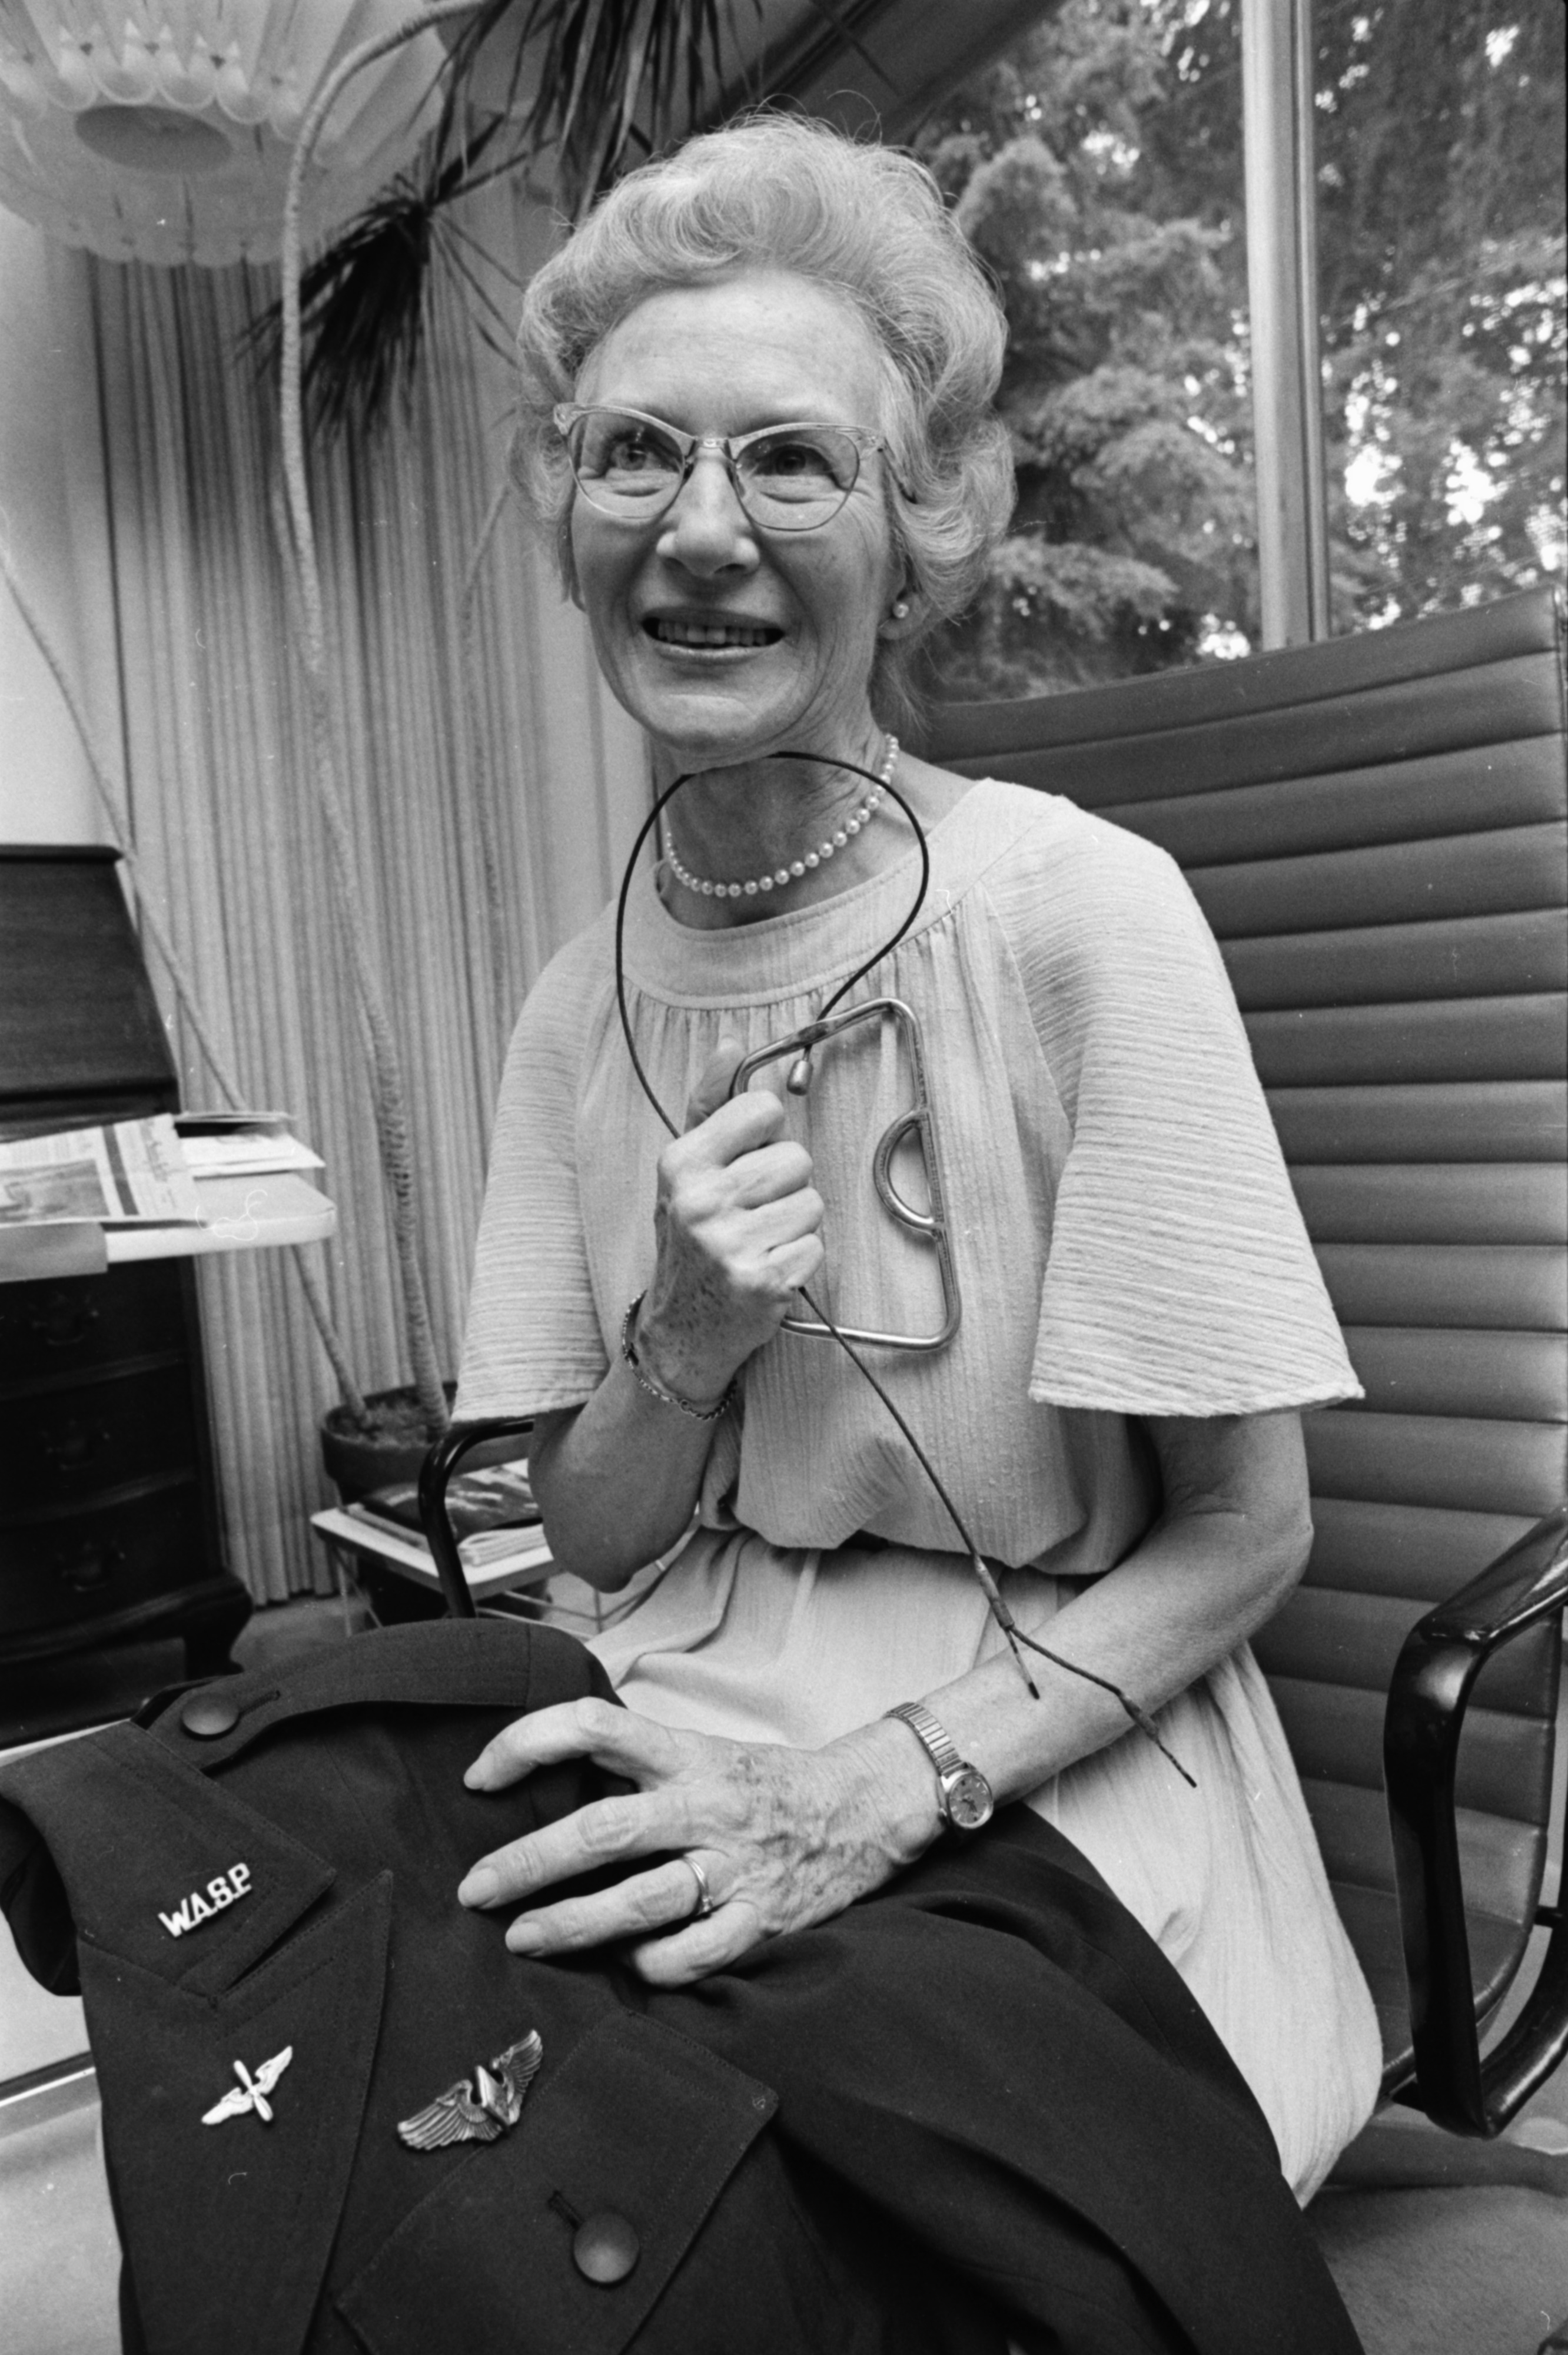 Marie Clark, World War II pilot, May 1977 image